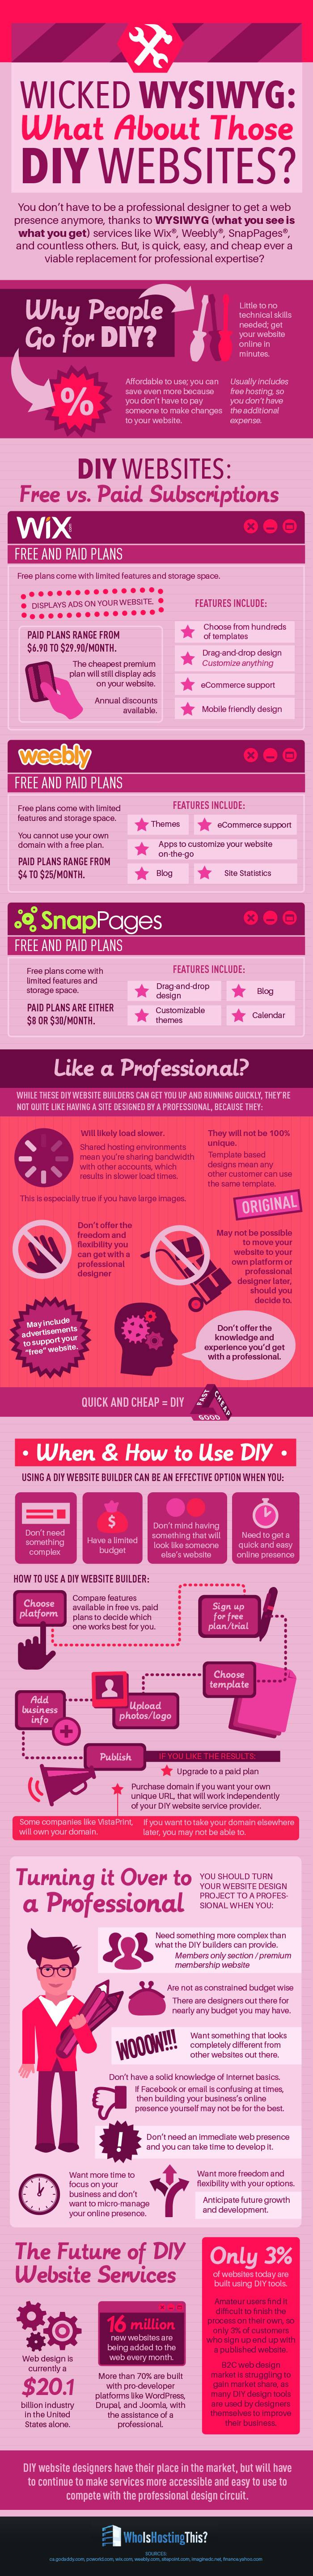 Best ideas about Best DIY Website Builder . Save or Pin Should You Use a DIY Website Builder infographic Now.